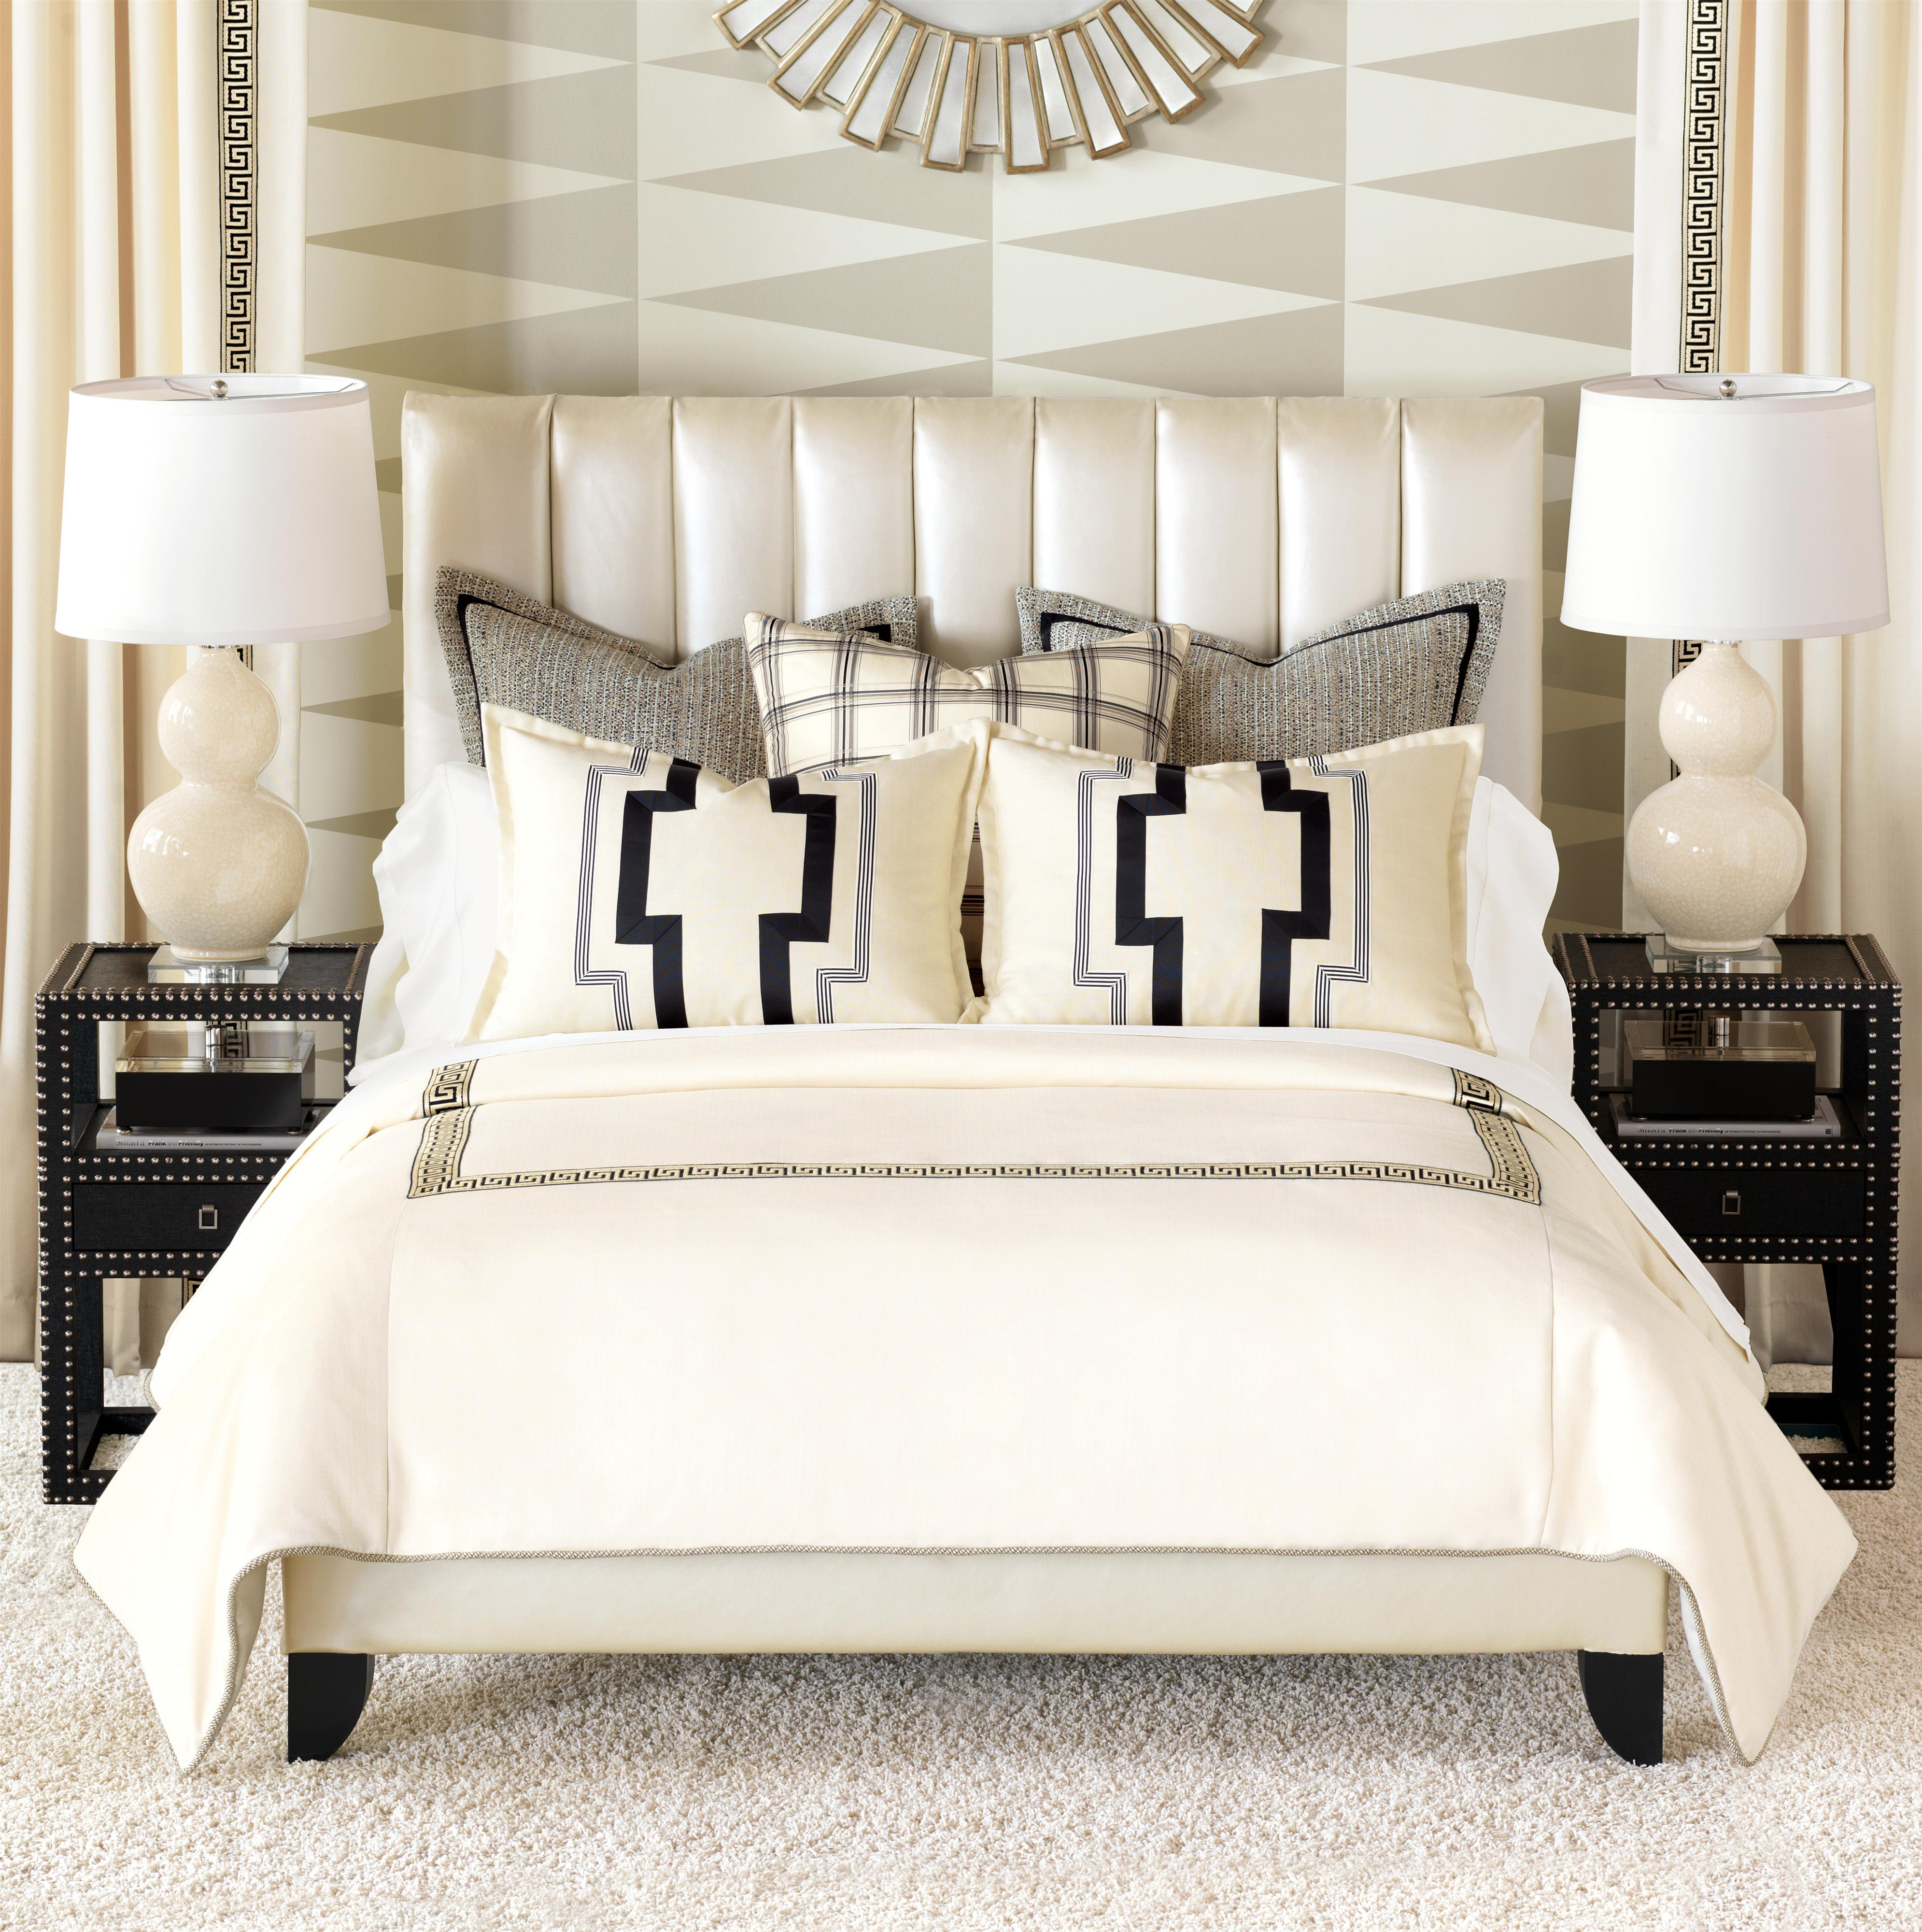 Abernathy Cal King Bedset by Eastern Accents at Michael Alan Furniture & Design